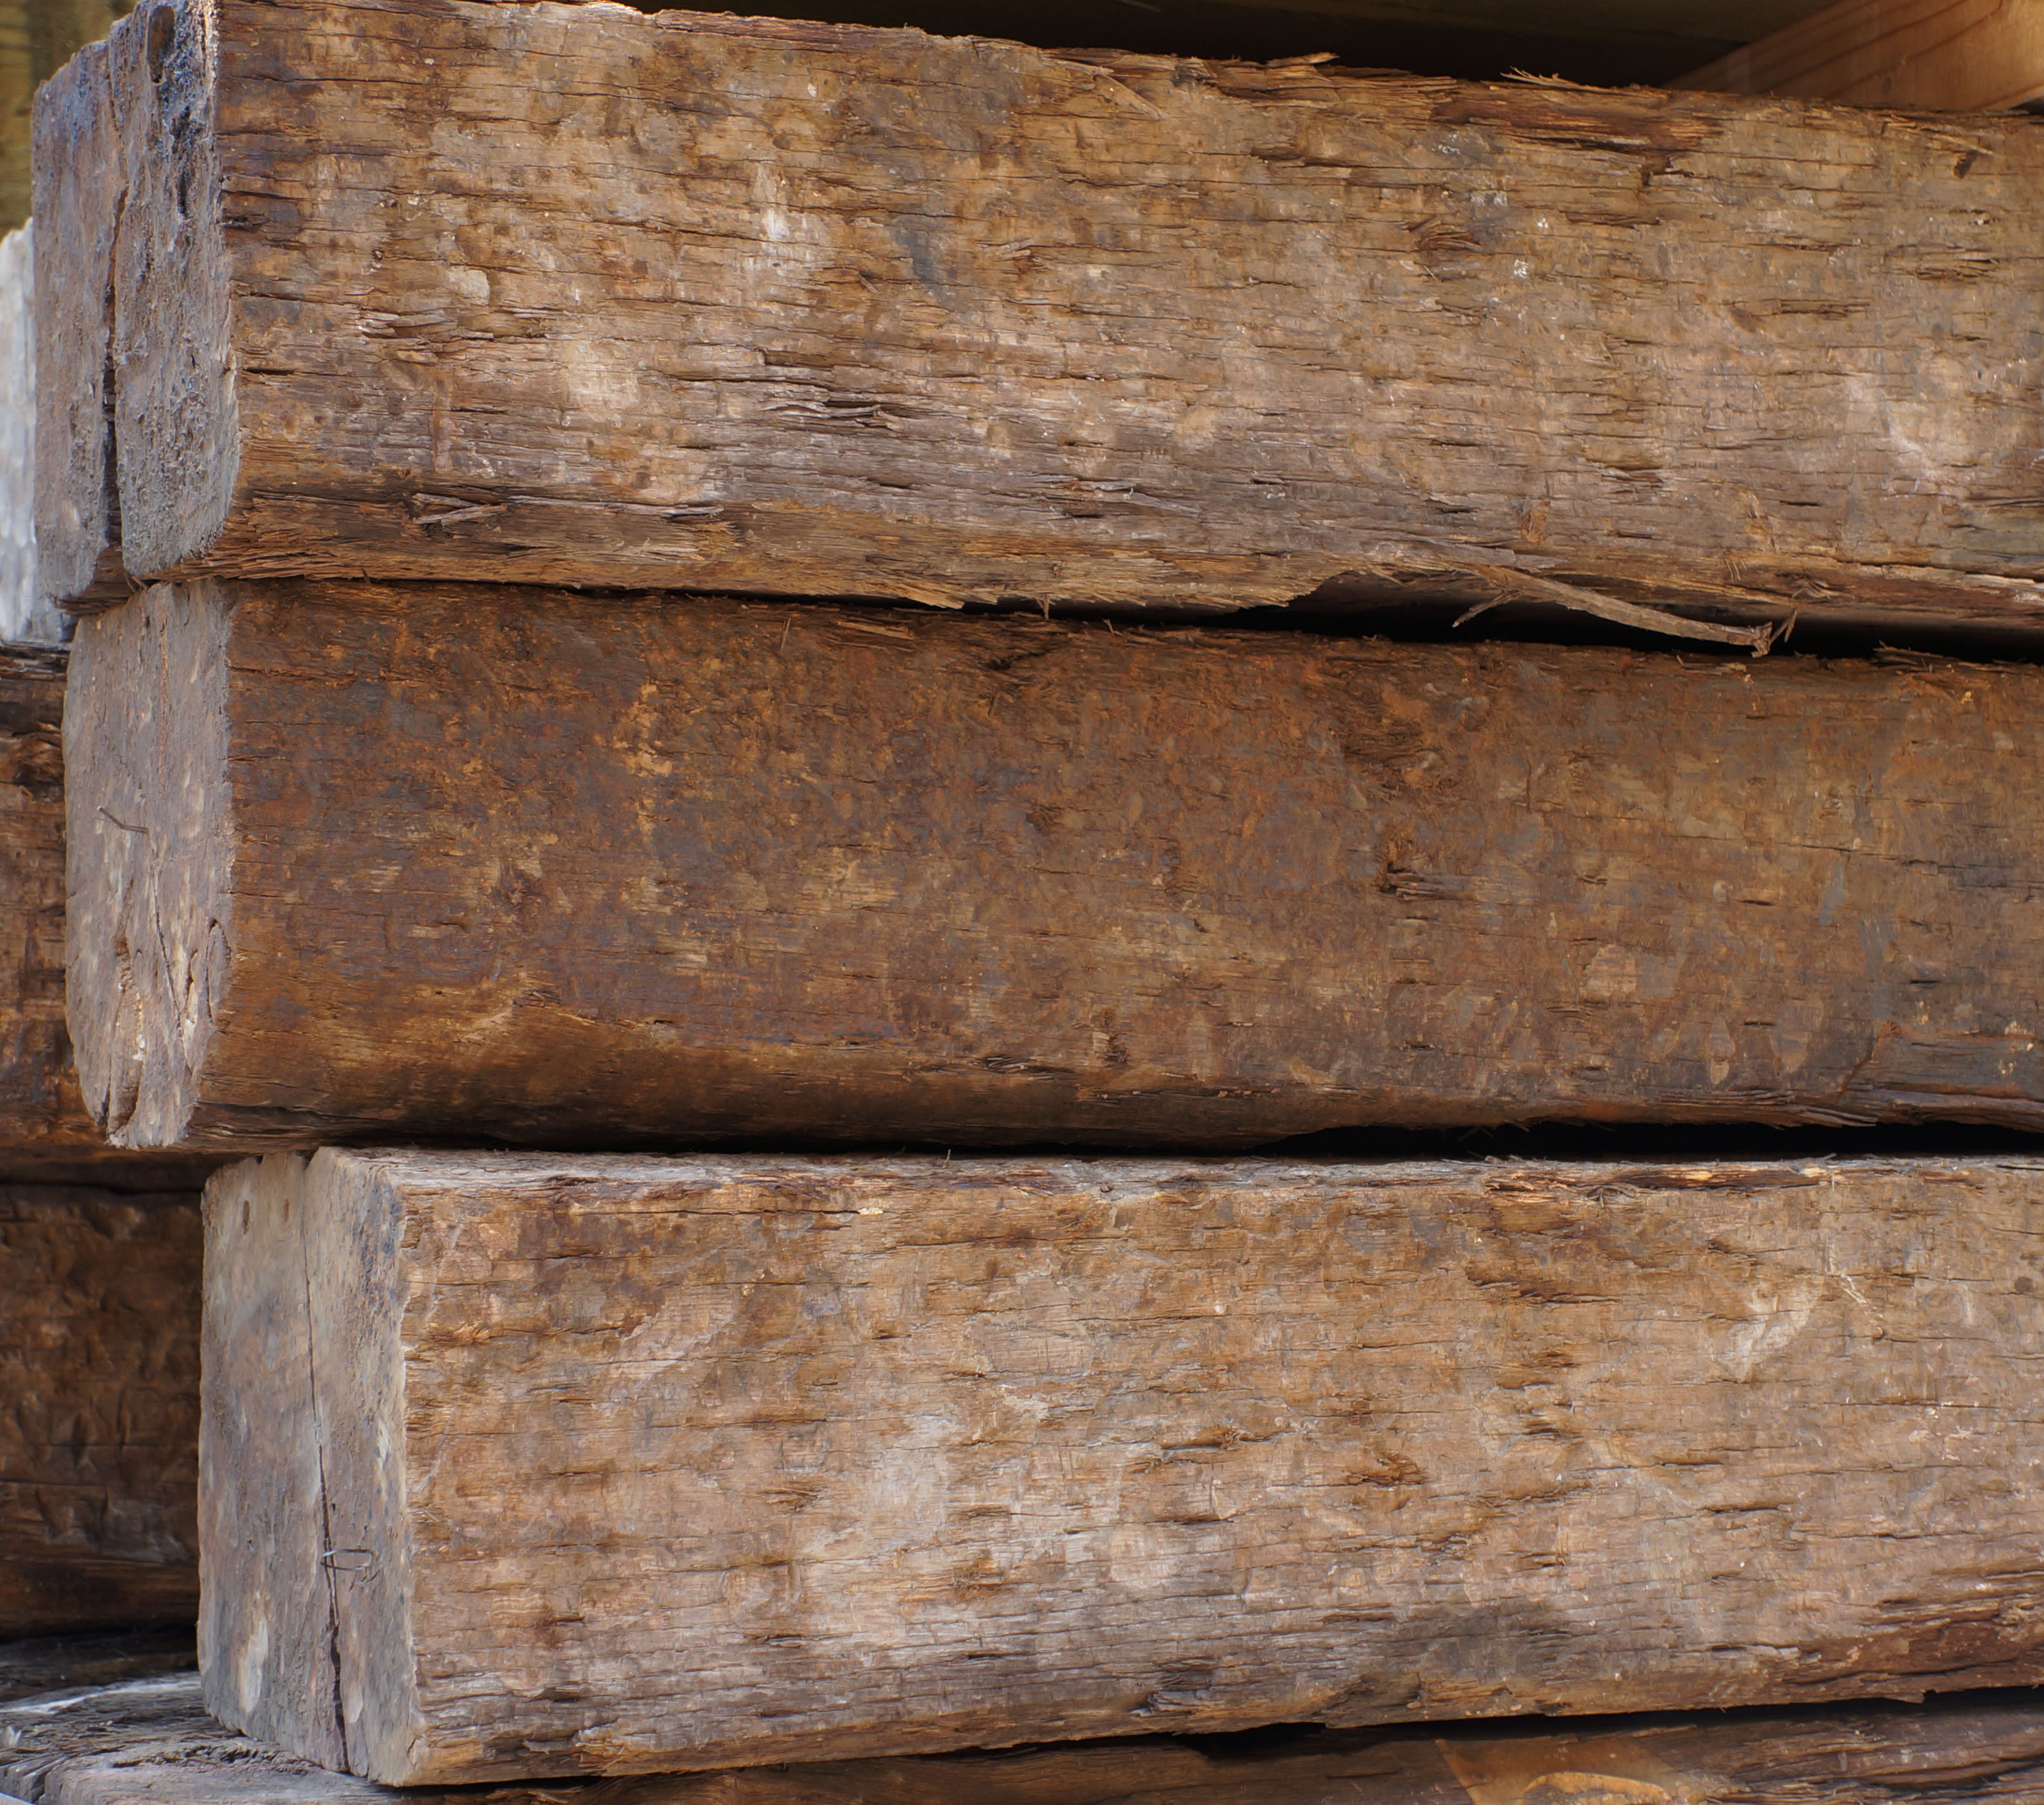 Pallet Stock | Wholesale Lumber | Railroad Ties - Fox Lumber